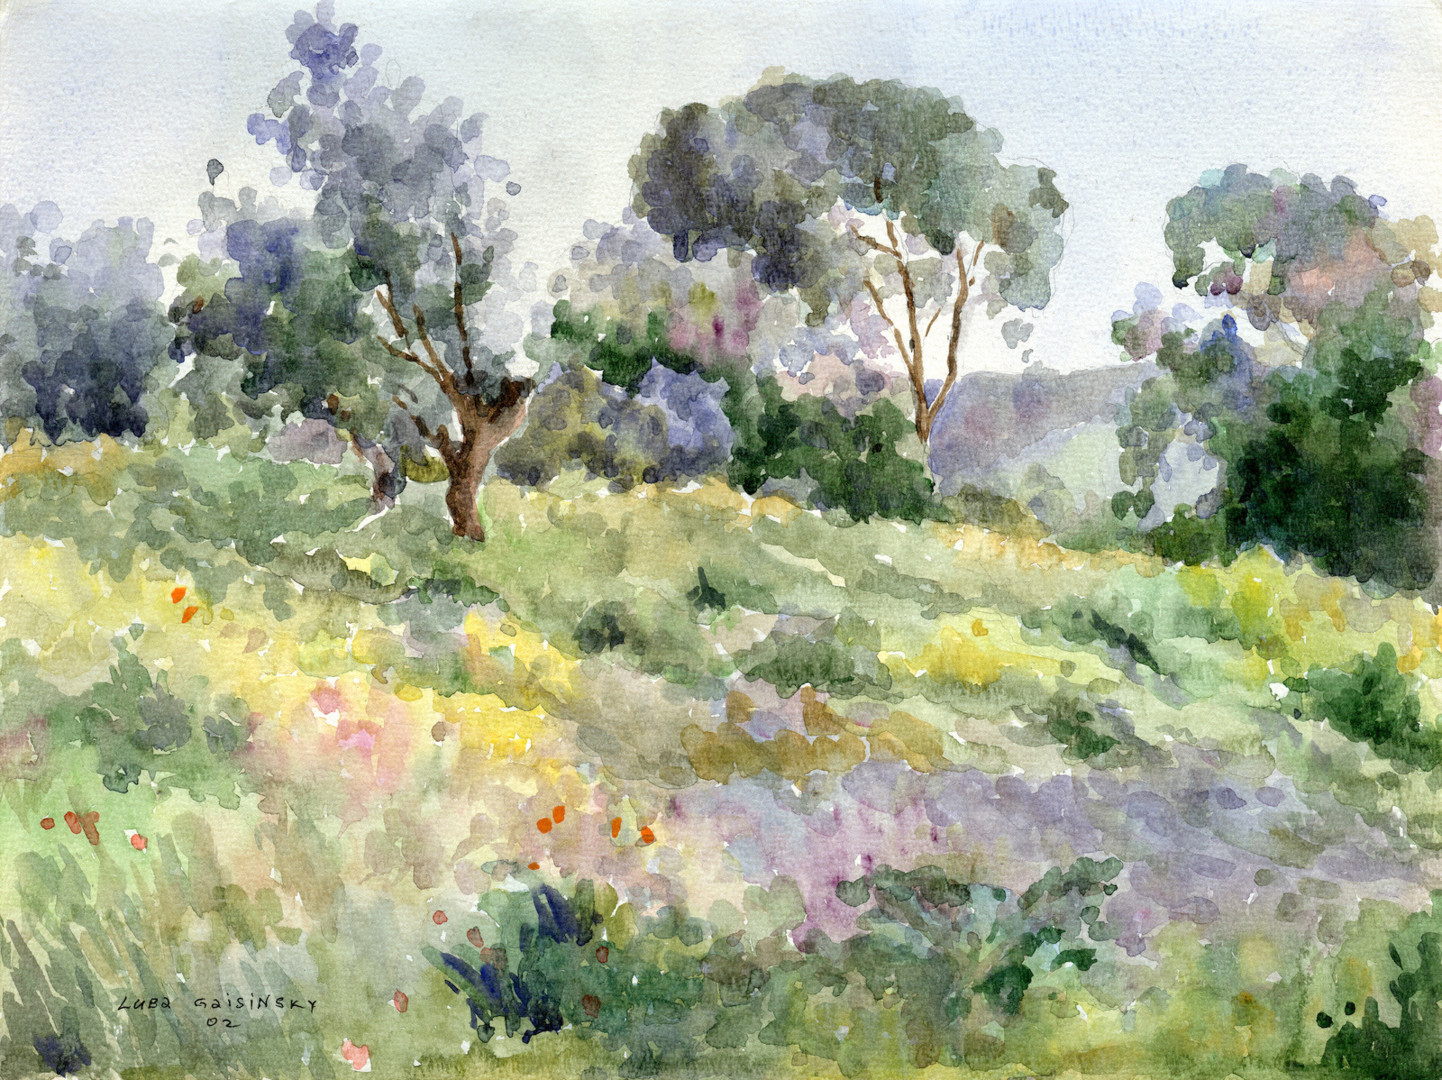 lubalem - Lanscape in vicinity of Latrun-watercolor.jpgi